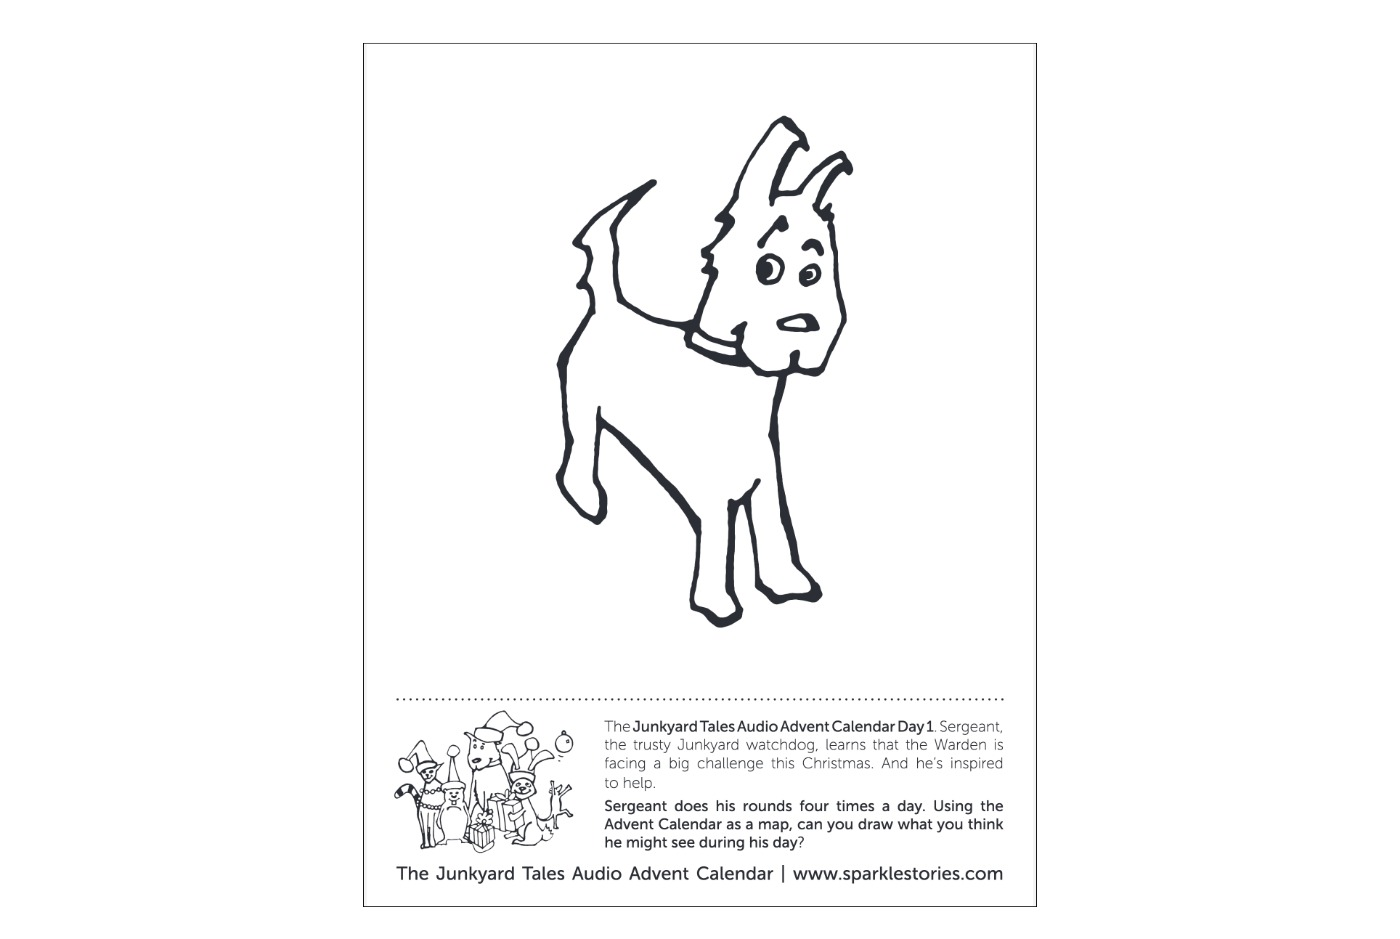 golden retriever puppy coloring page two boxer dogs 1986 chicago